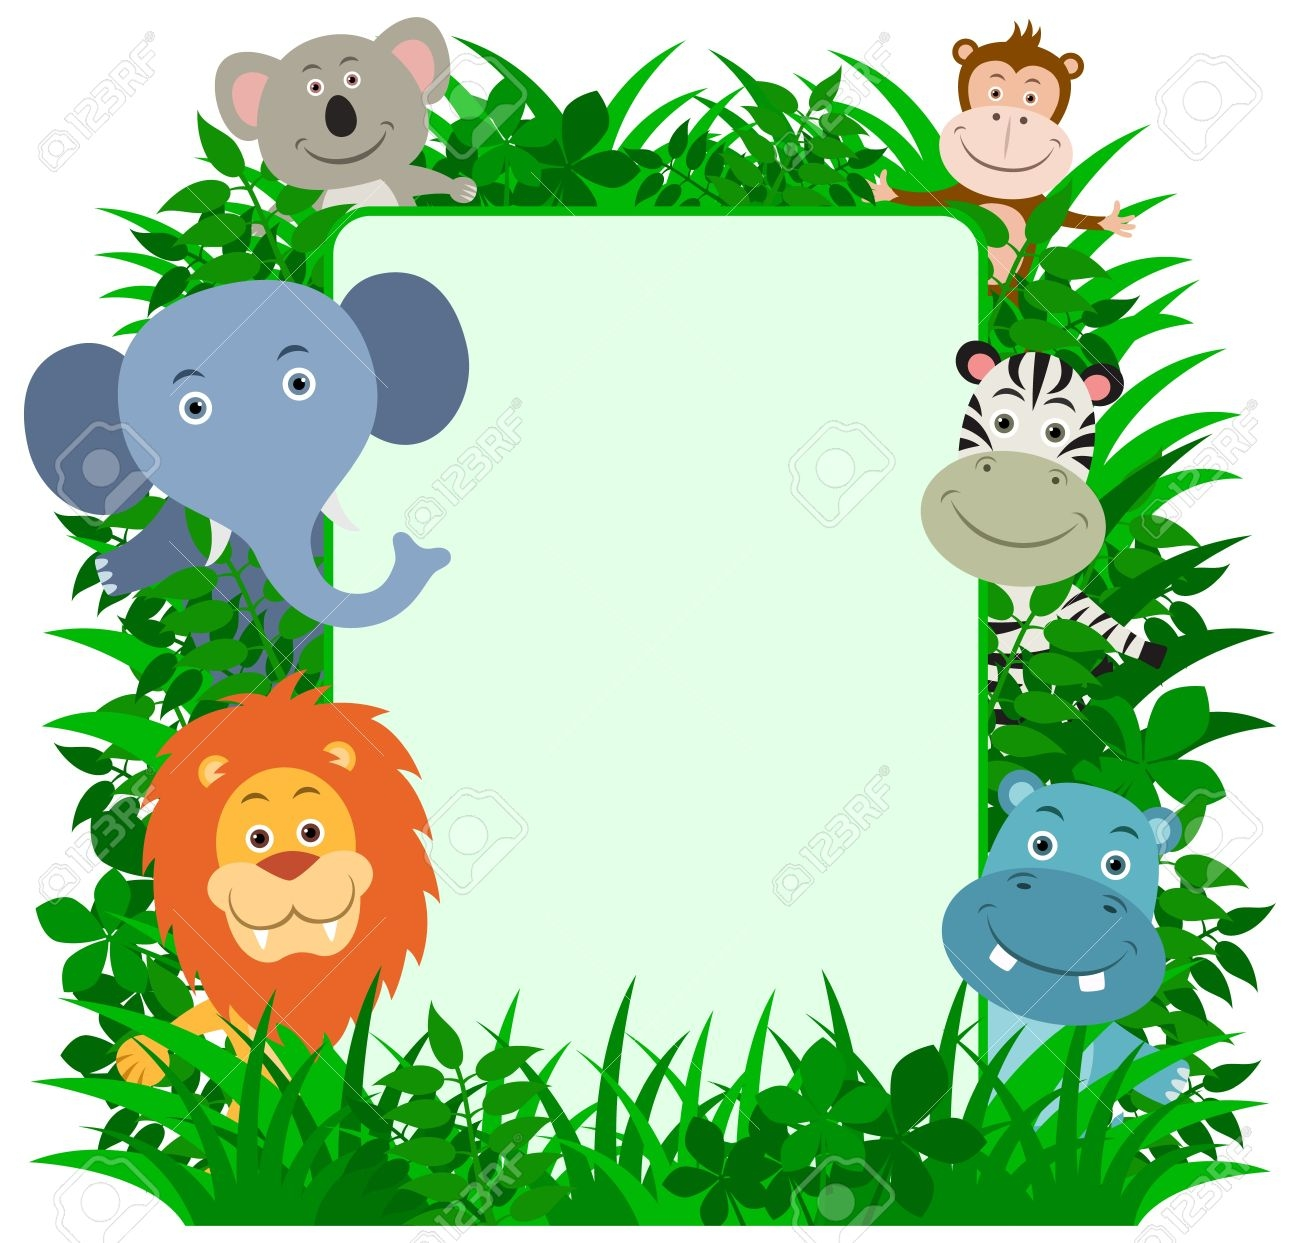 Free jungle clipart svg royalty free Jungle Border Clipart | Free download best Jungle Border Clipart on ... svg royalty free